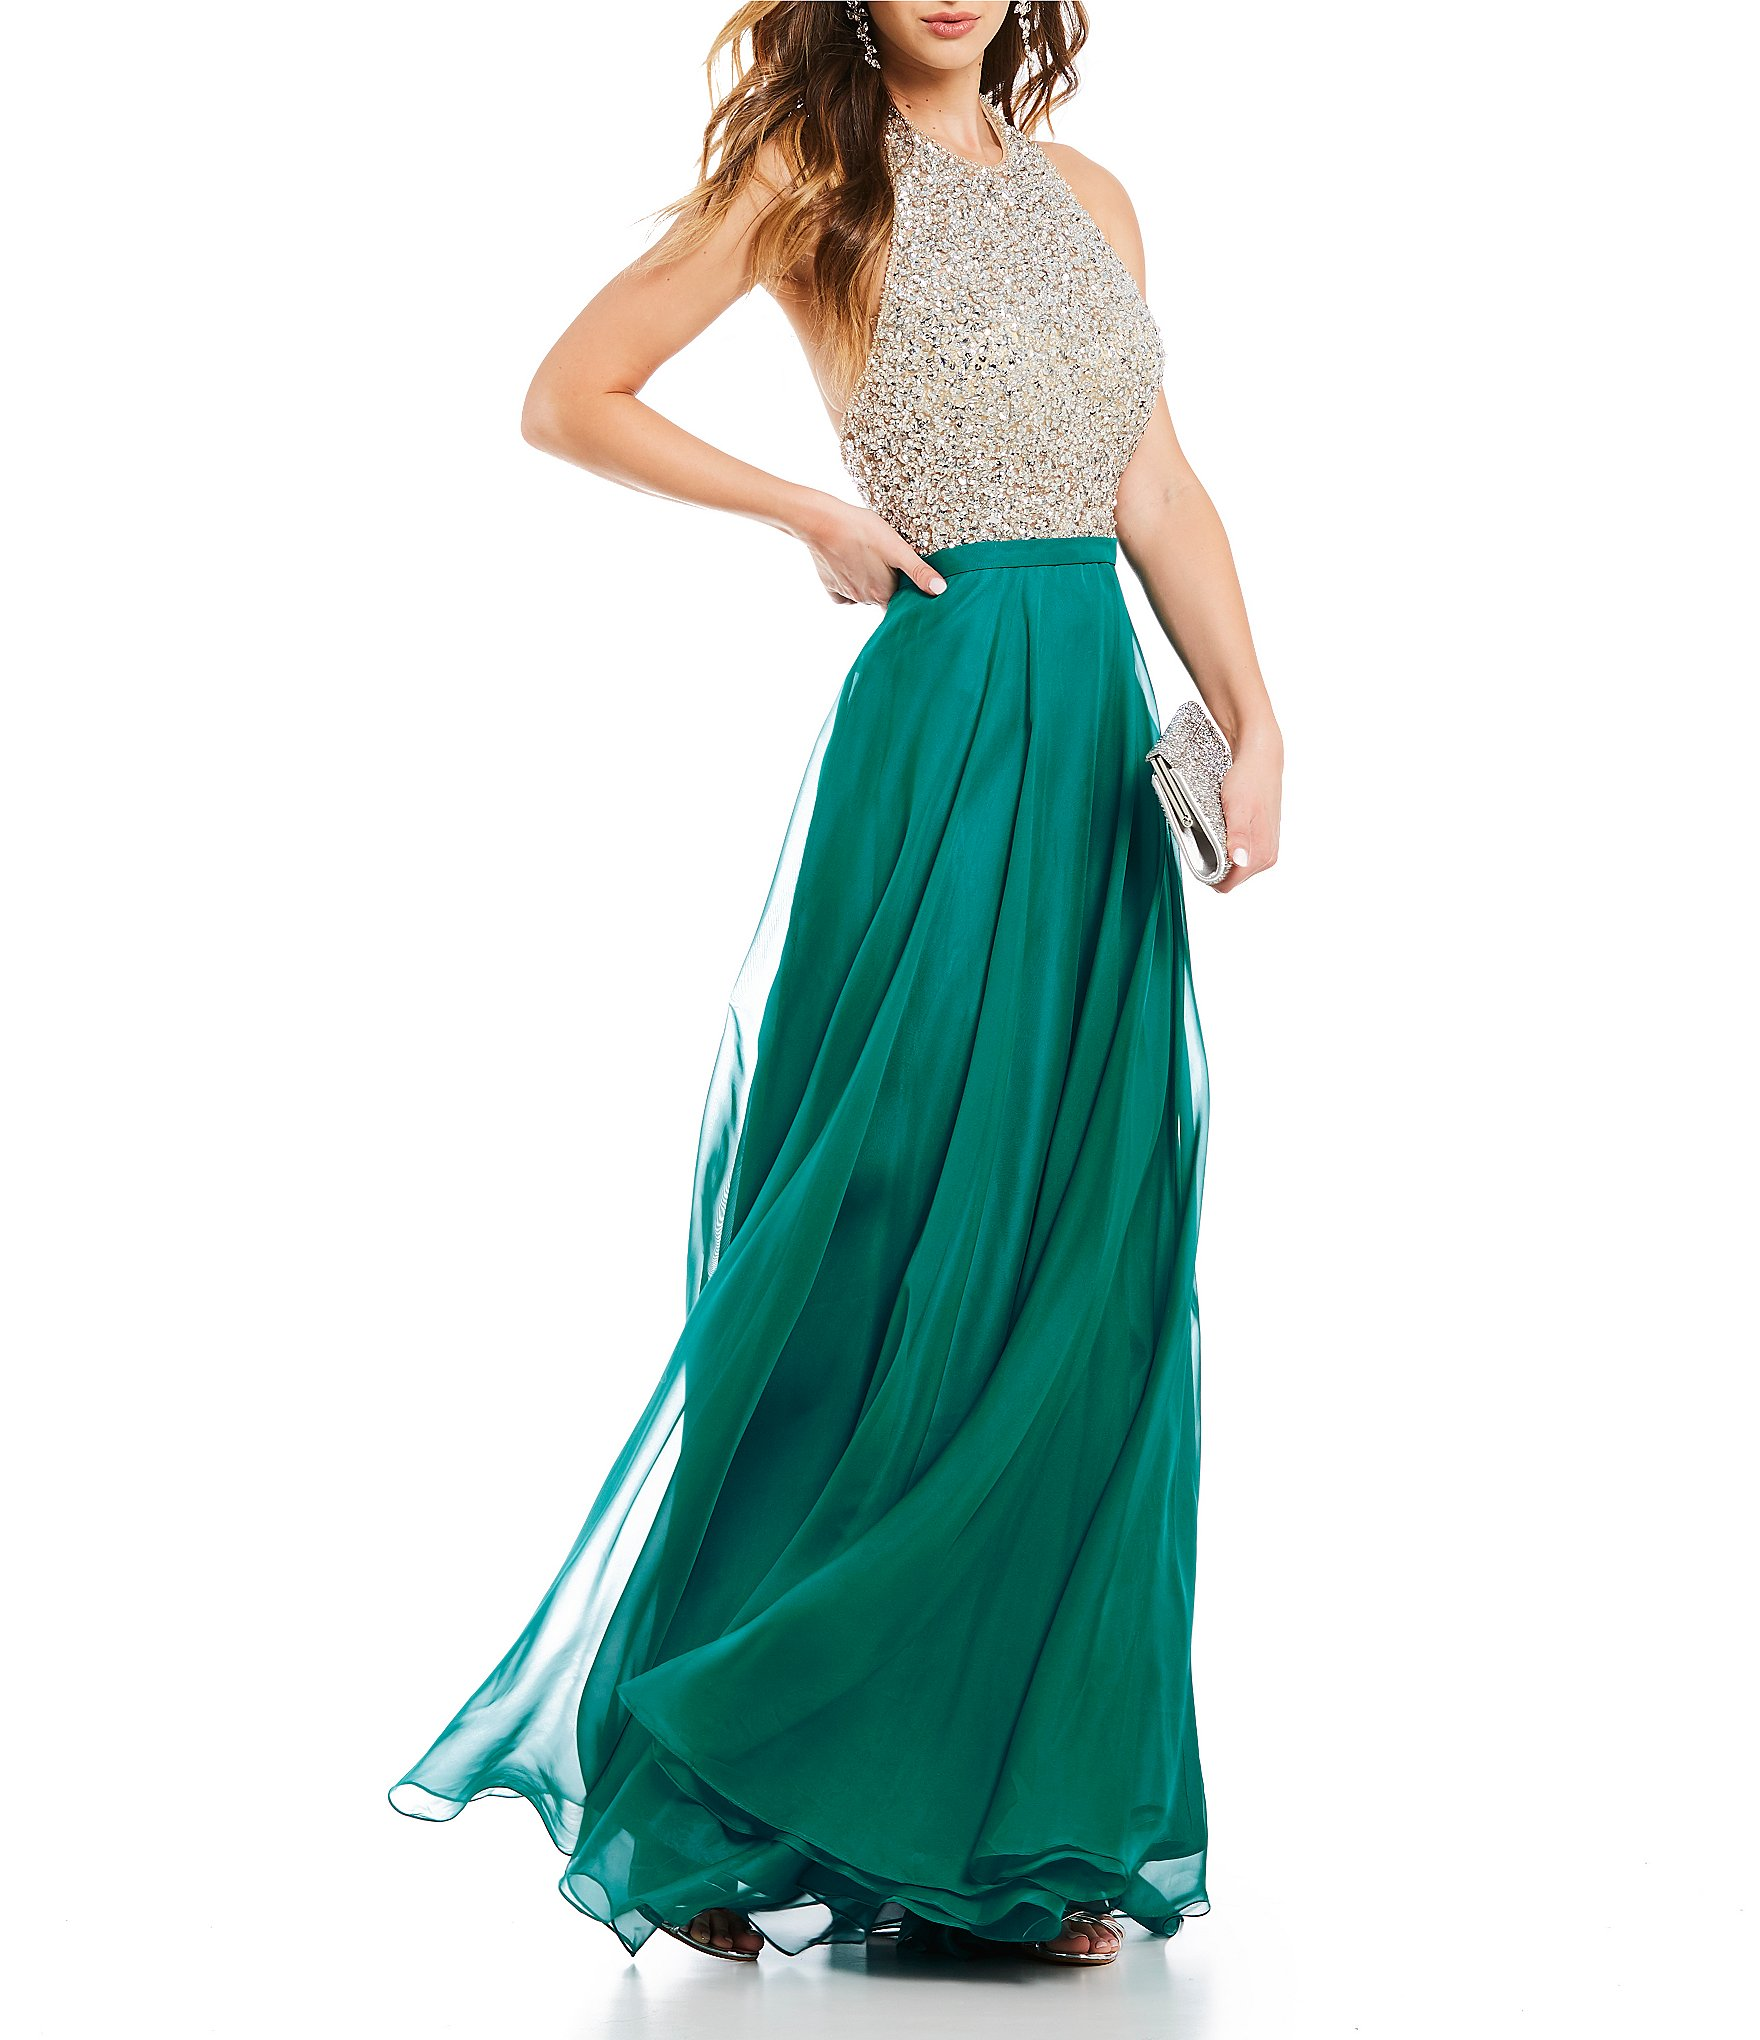 Excellent Prom Dresses Chattanooga Tn Photos - Wedding Ideas ...